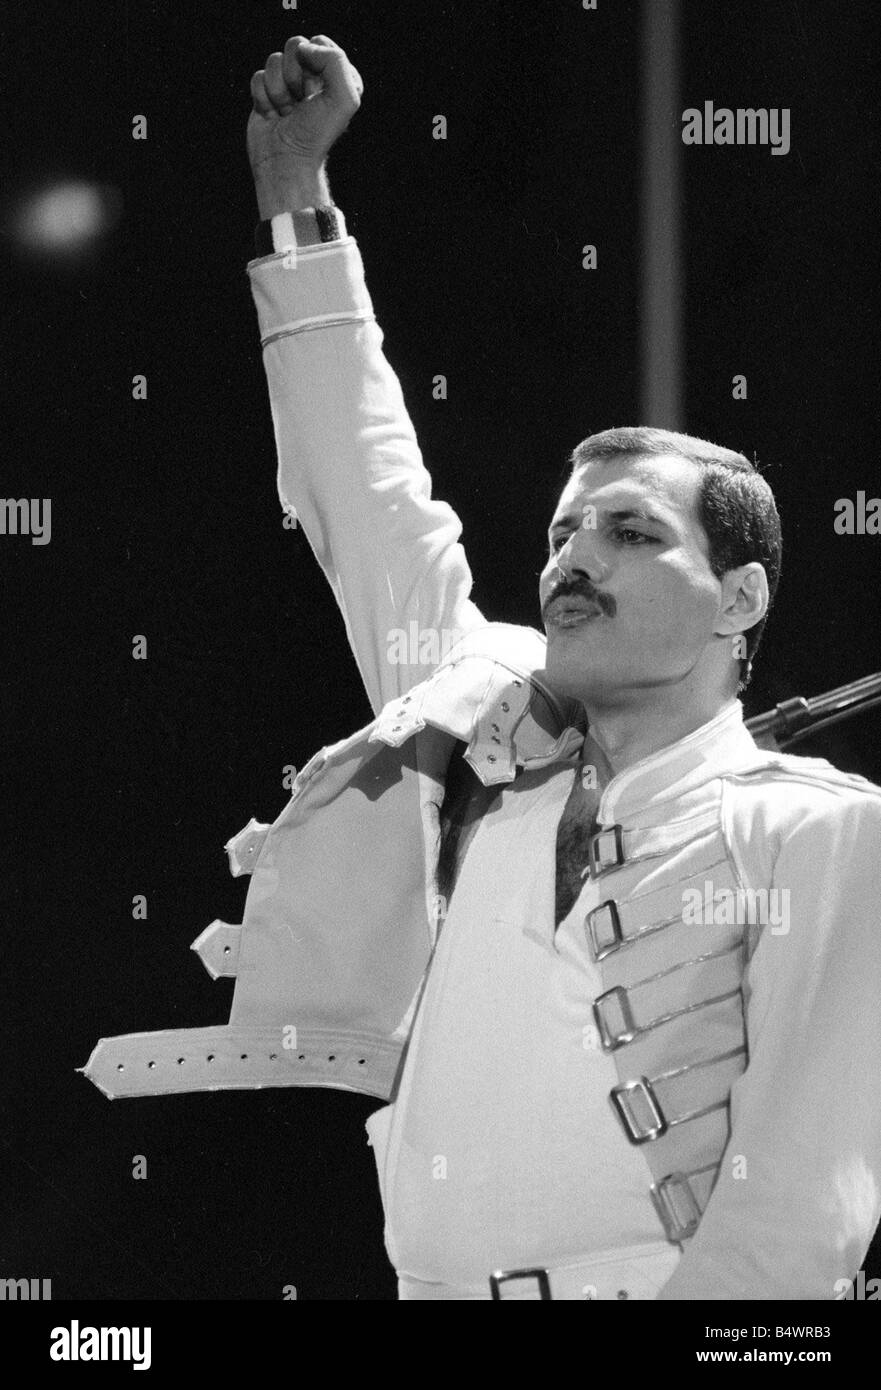 queen rock group freddie mercury queen in concert at wembley stadium stock photo alamy alamy